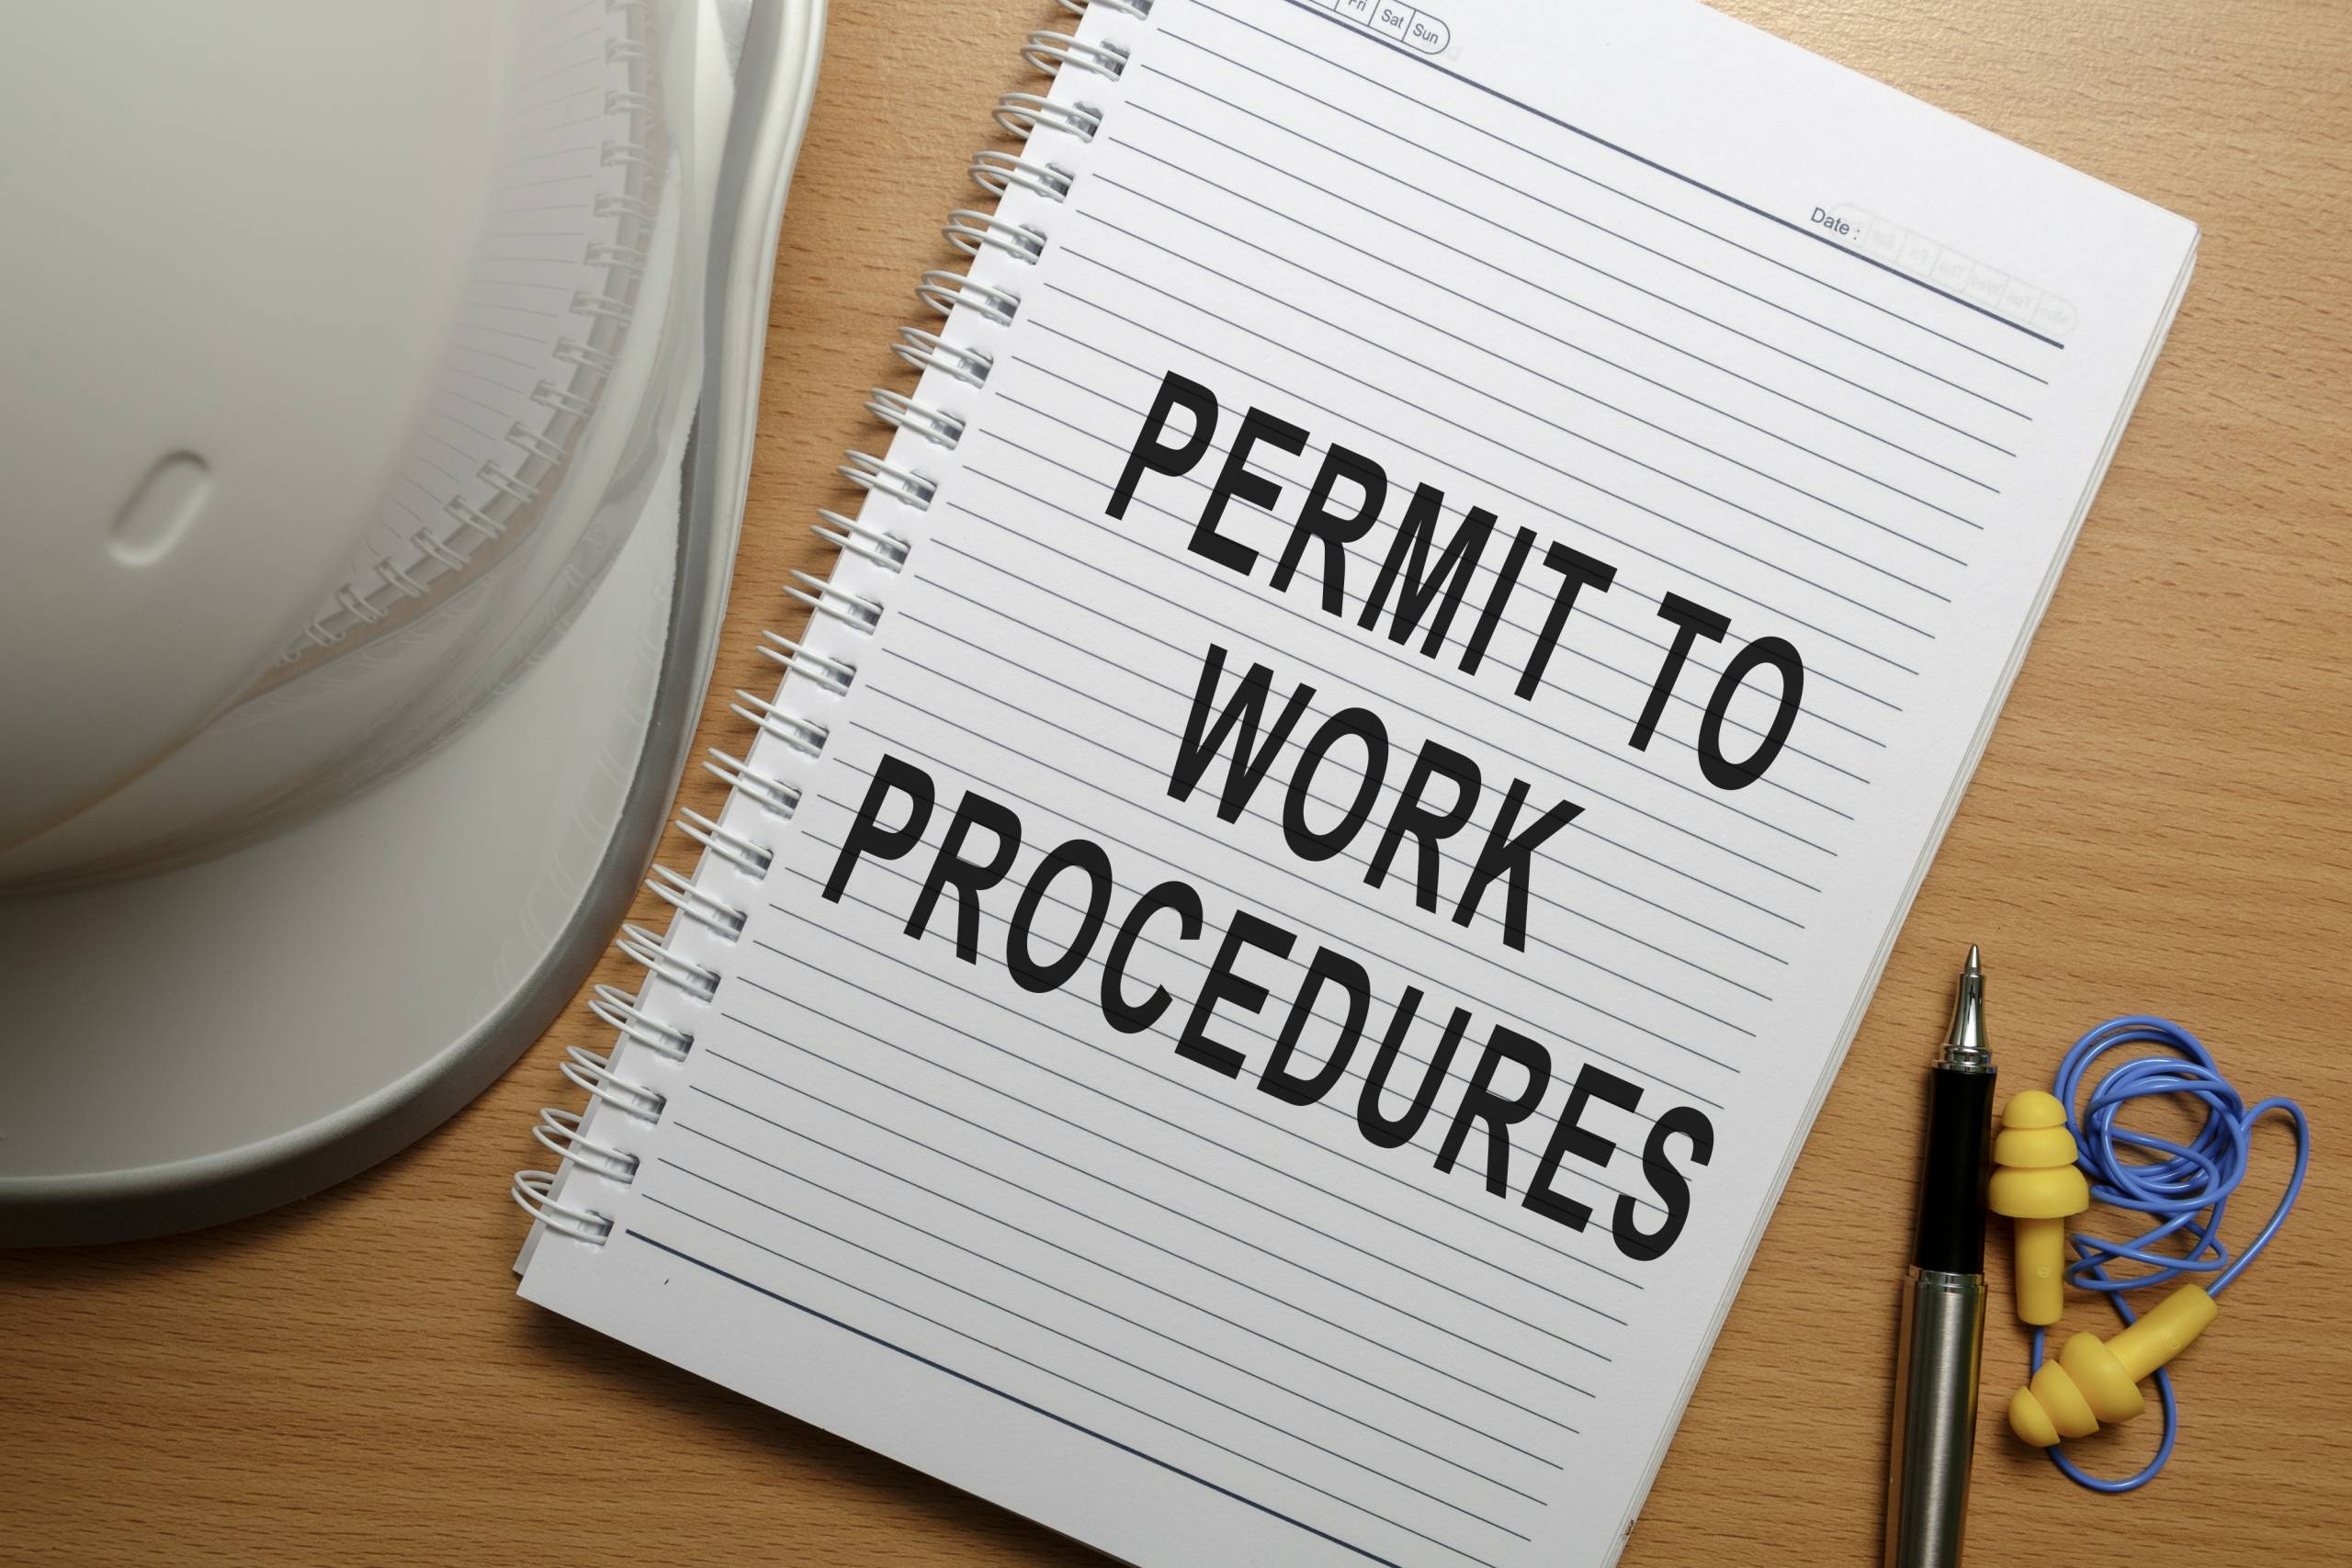 PERMIT-TO-WORK